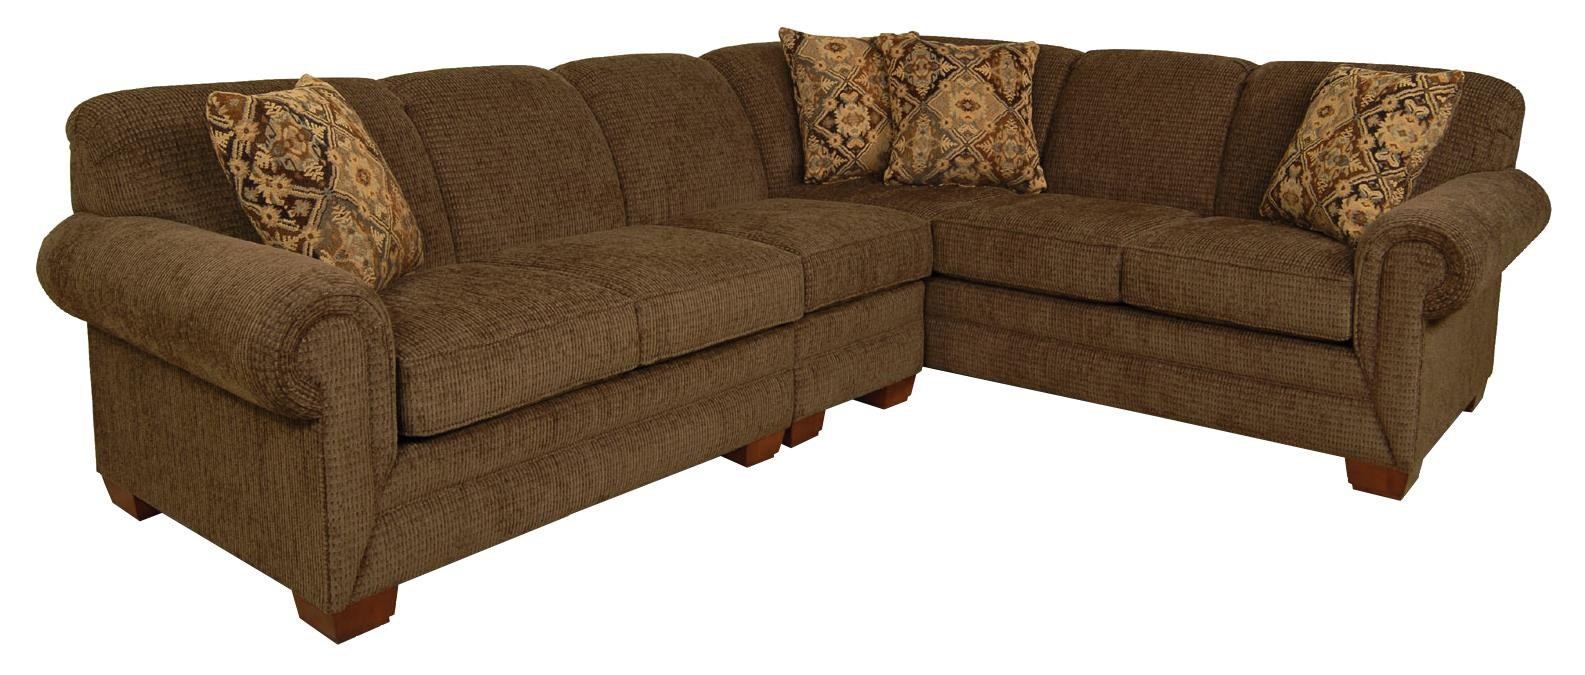 England Leah Five Seat Sectional Sofa